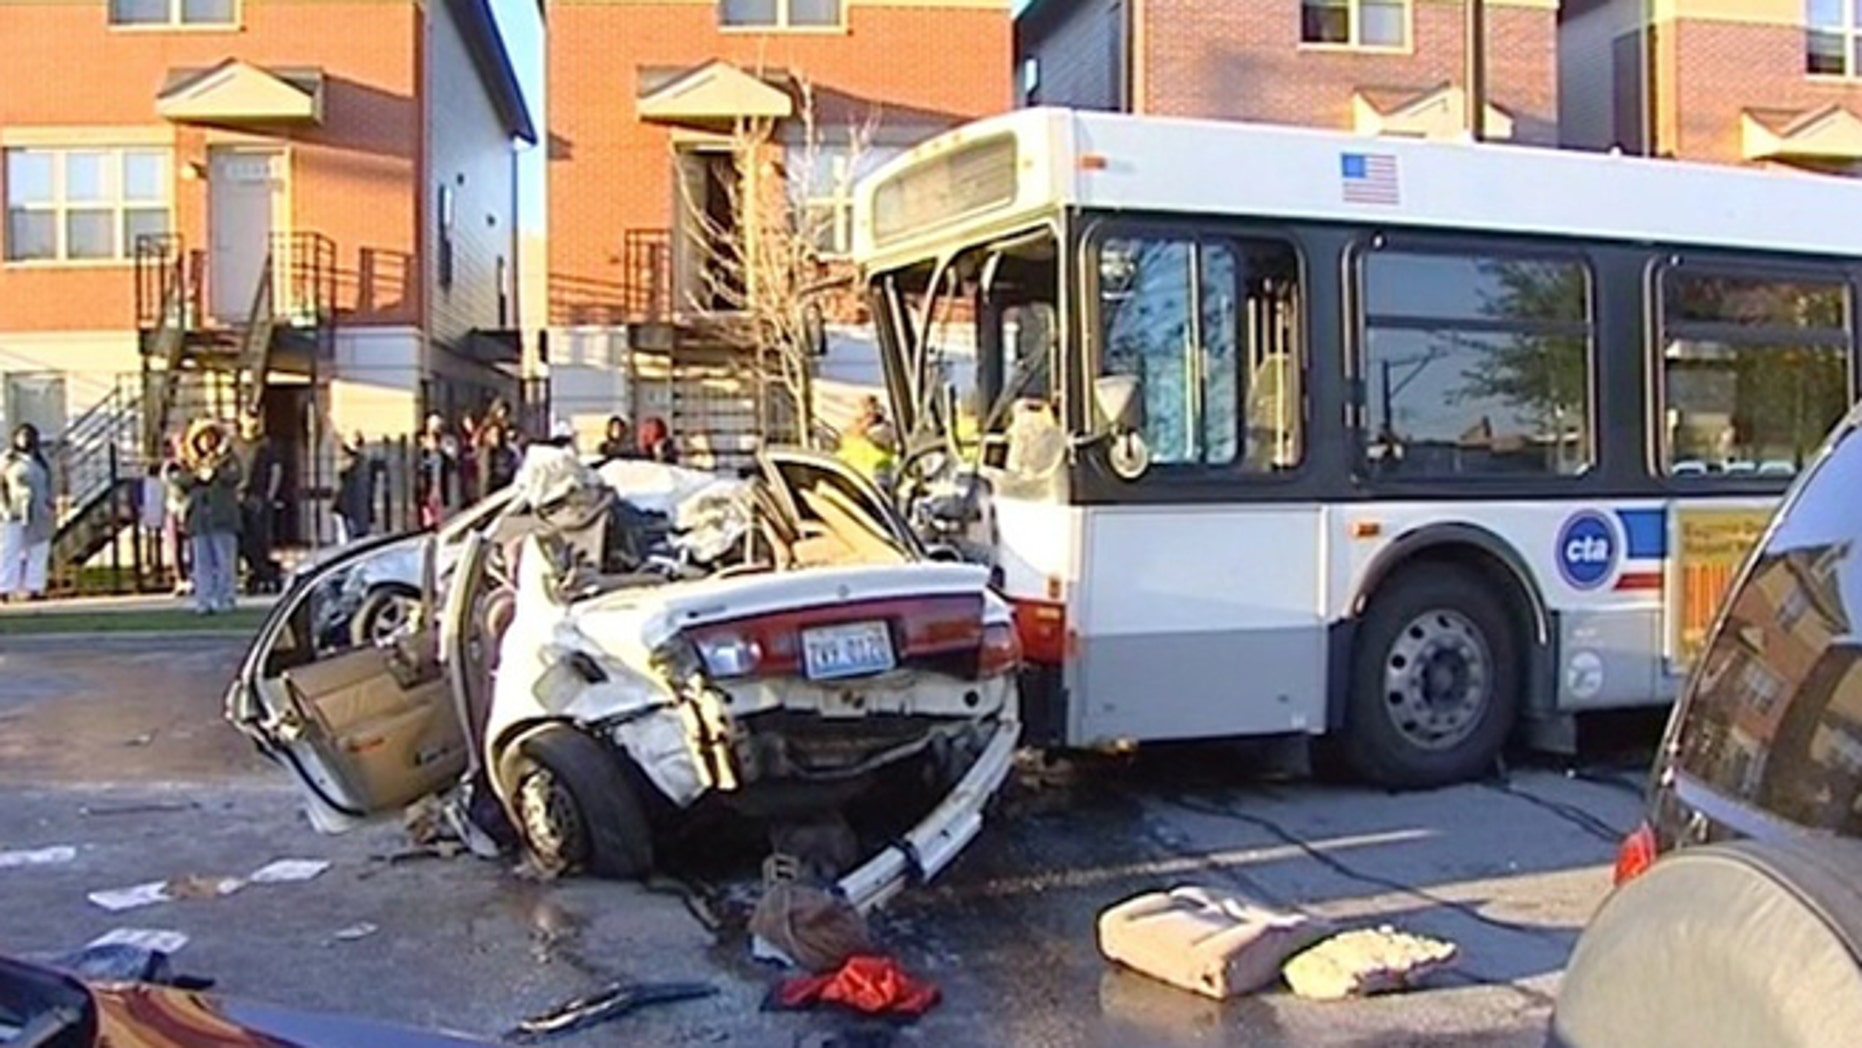 4 dead, 8 hurt in Chicago crash involving CTA bus | Fox News